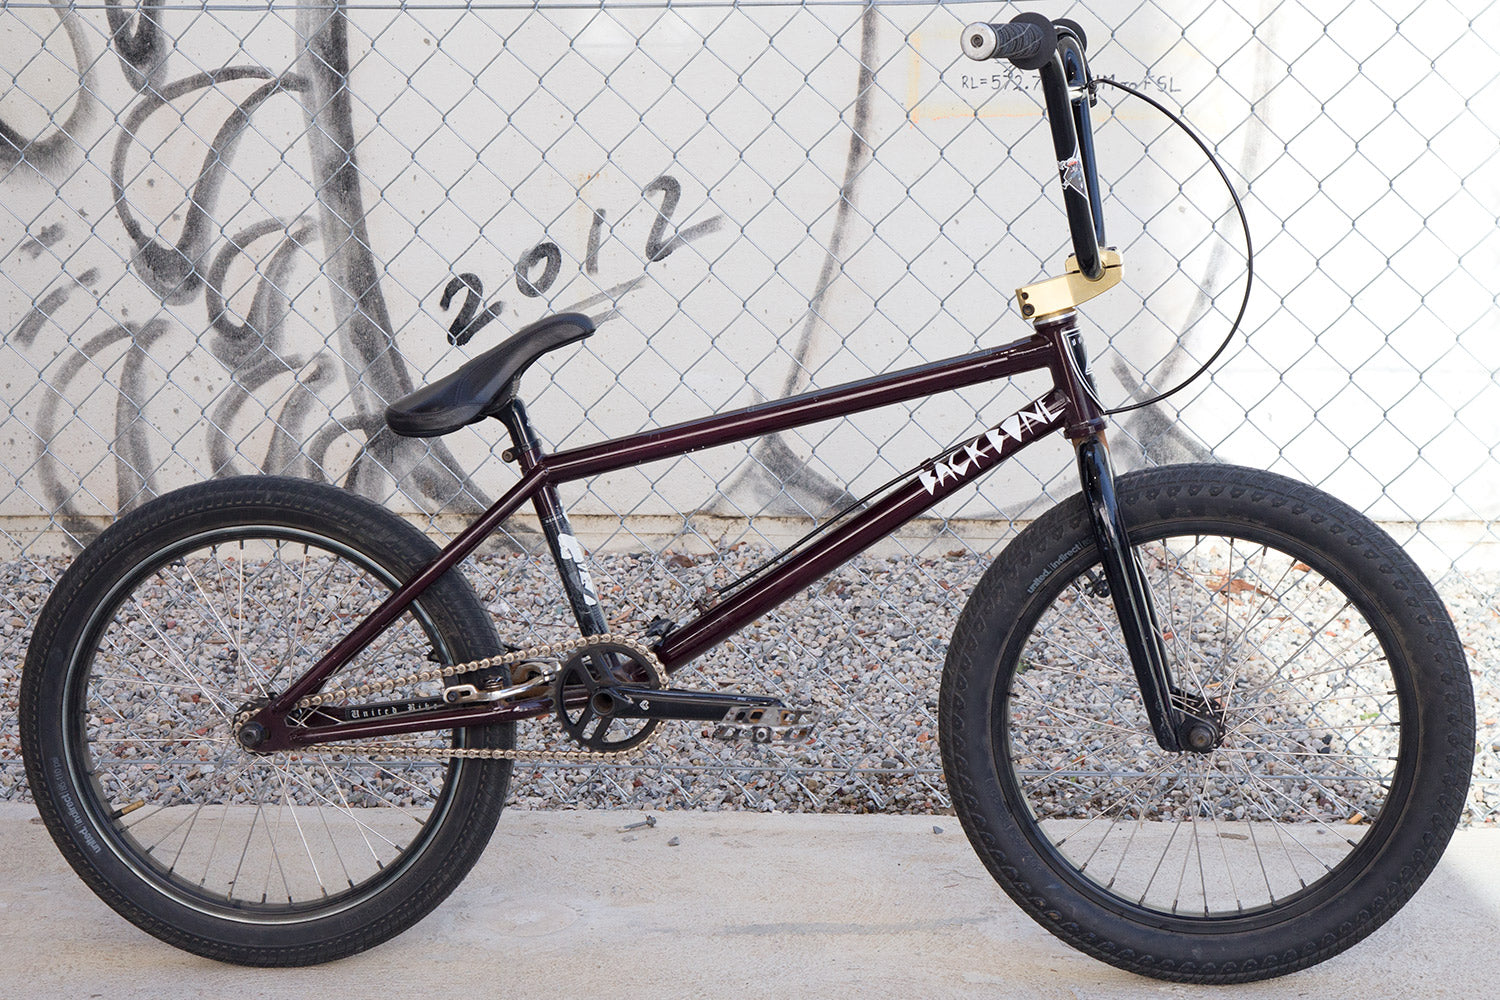 Tyson Jones Peni United Knightsbridge bike check side